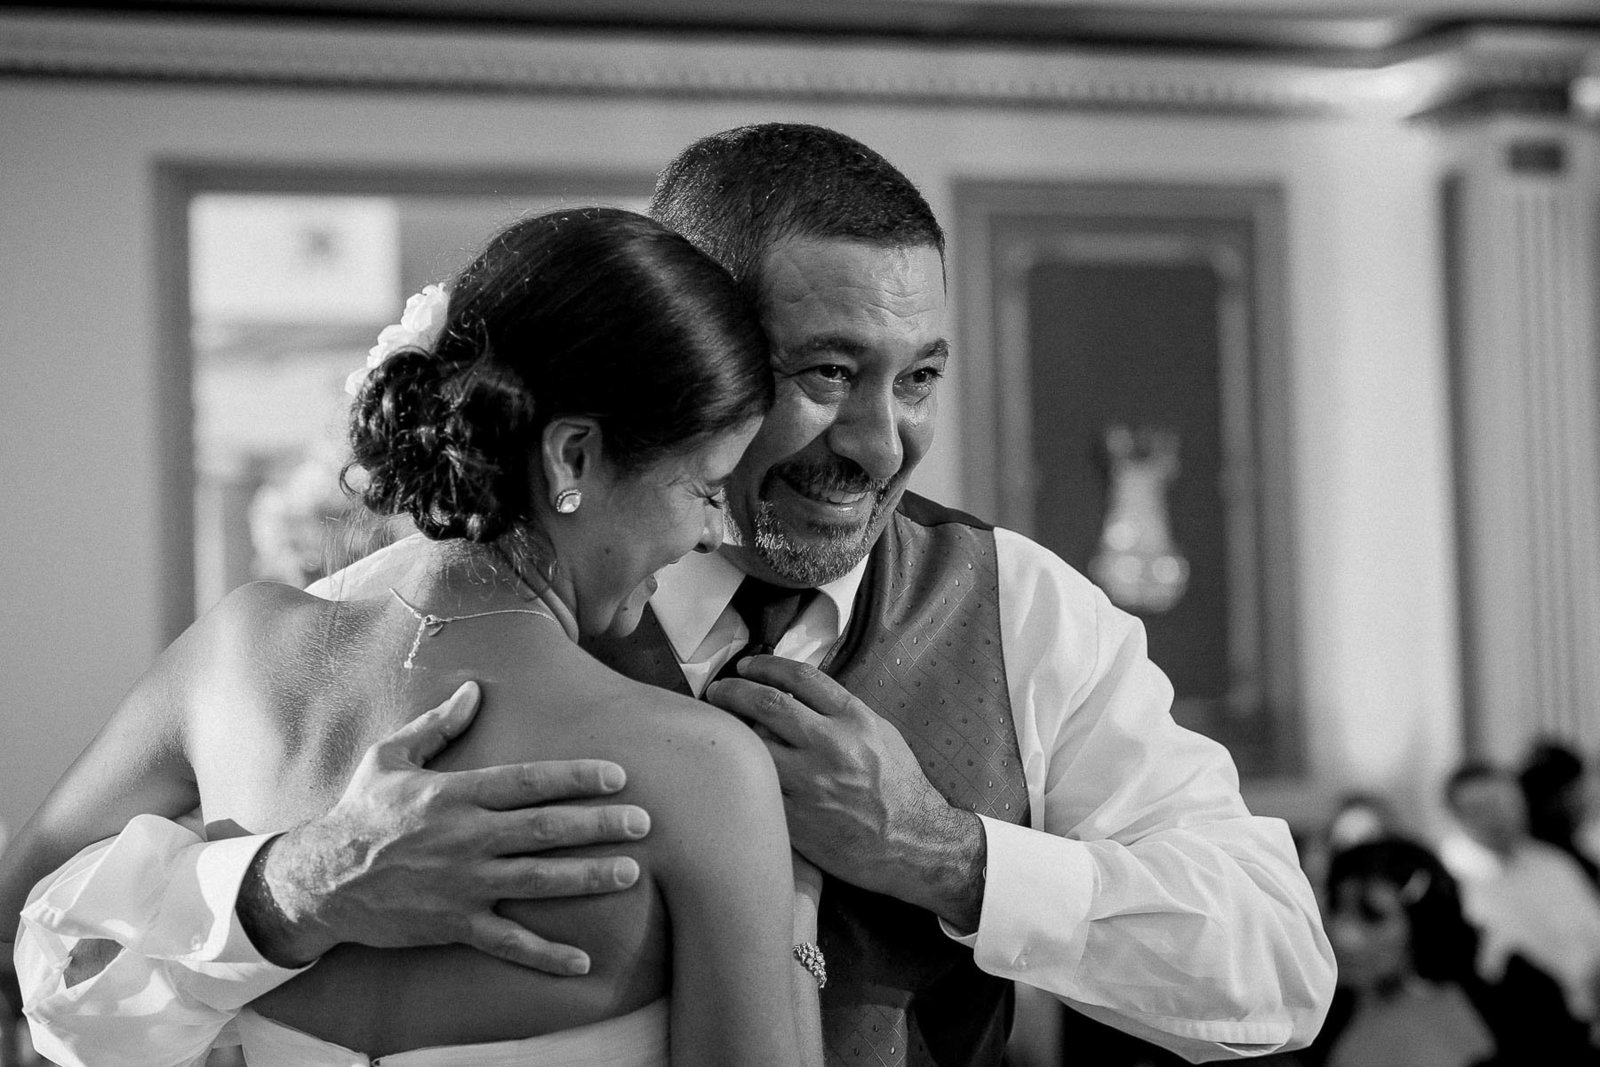 Bride dances with father, Mendenhall Inn, Kennett Square, Pennsylvania